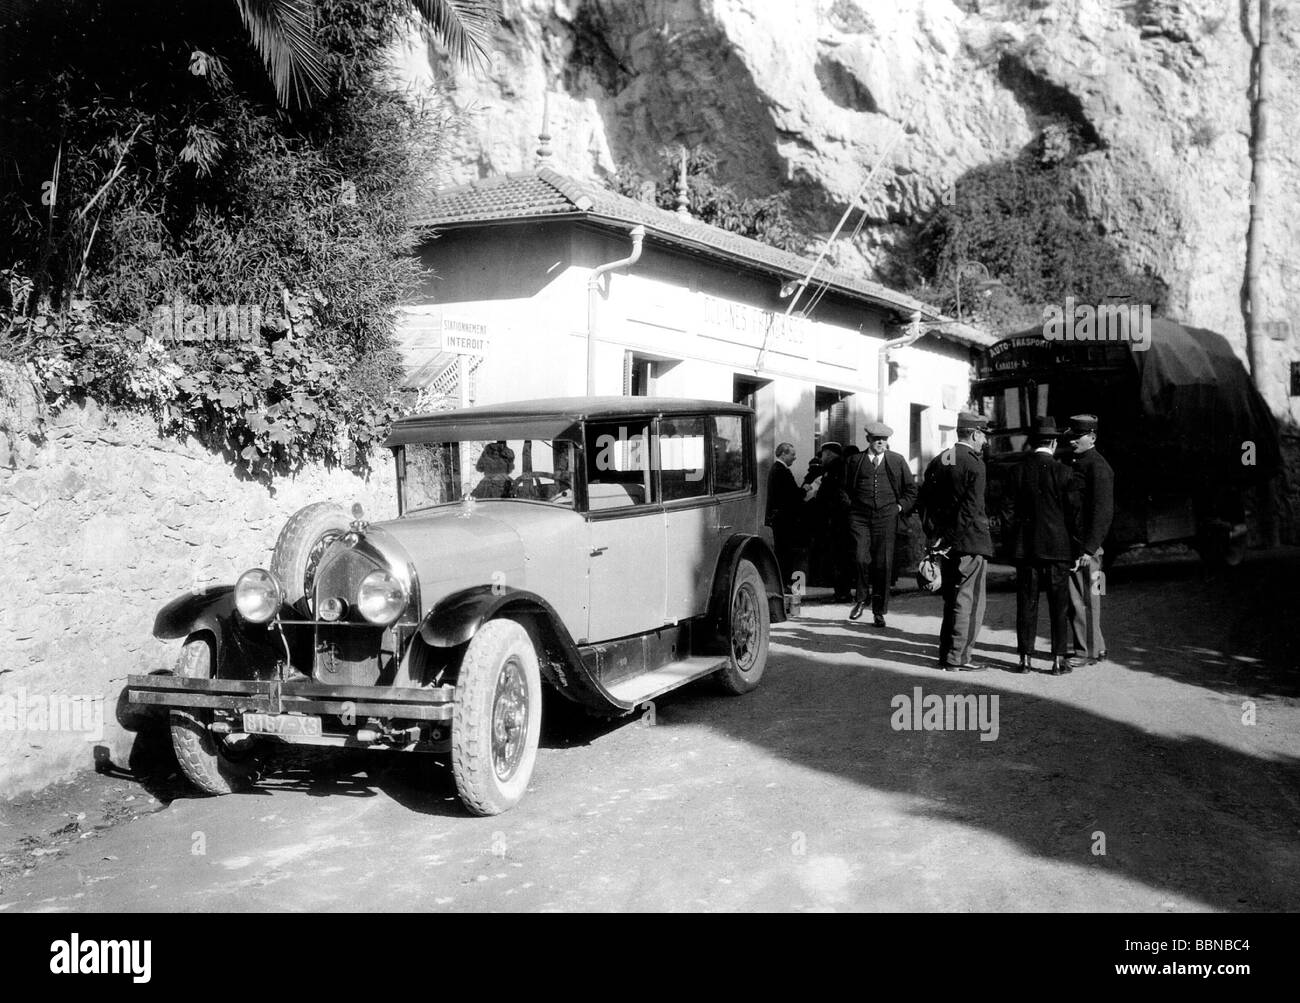 border, French-Italian border, station of the French customs in Menton, circa 1930, Additional-Rights-Clearances Stock Photo